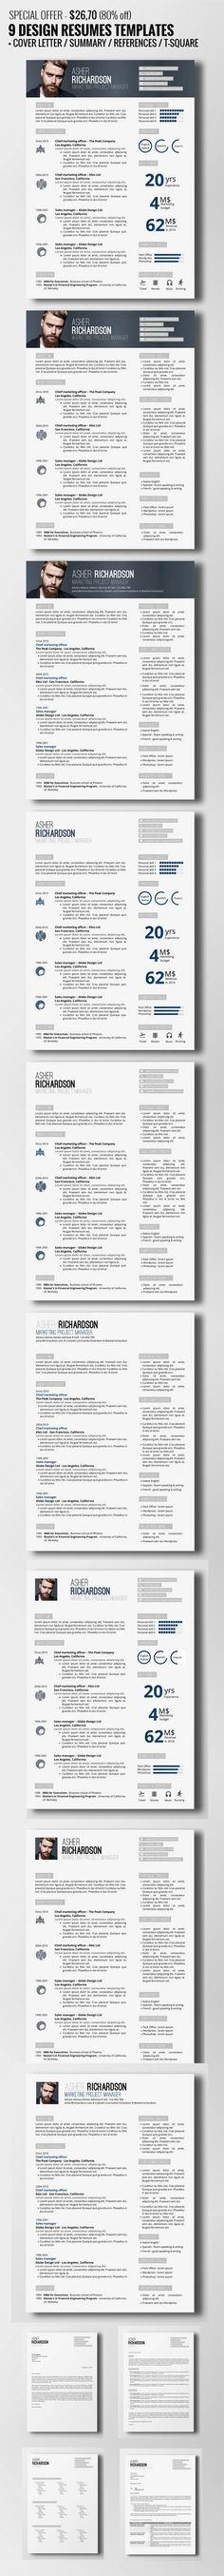 435 best Resume images on Pinterest Resume design, Design resume - business support manager sample resume